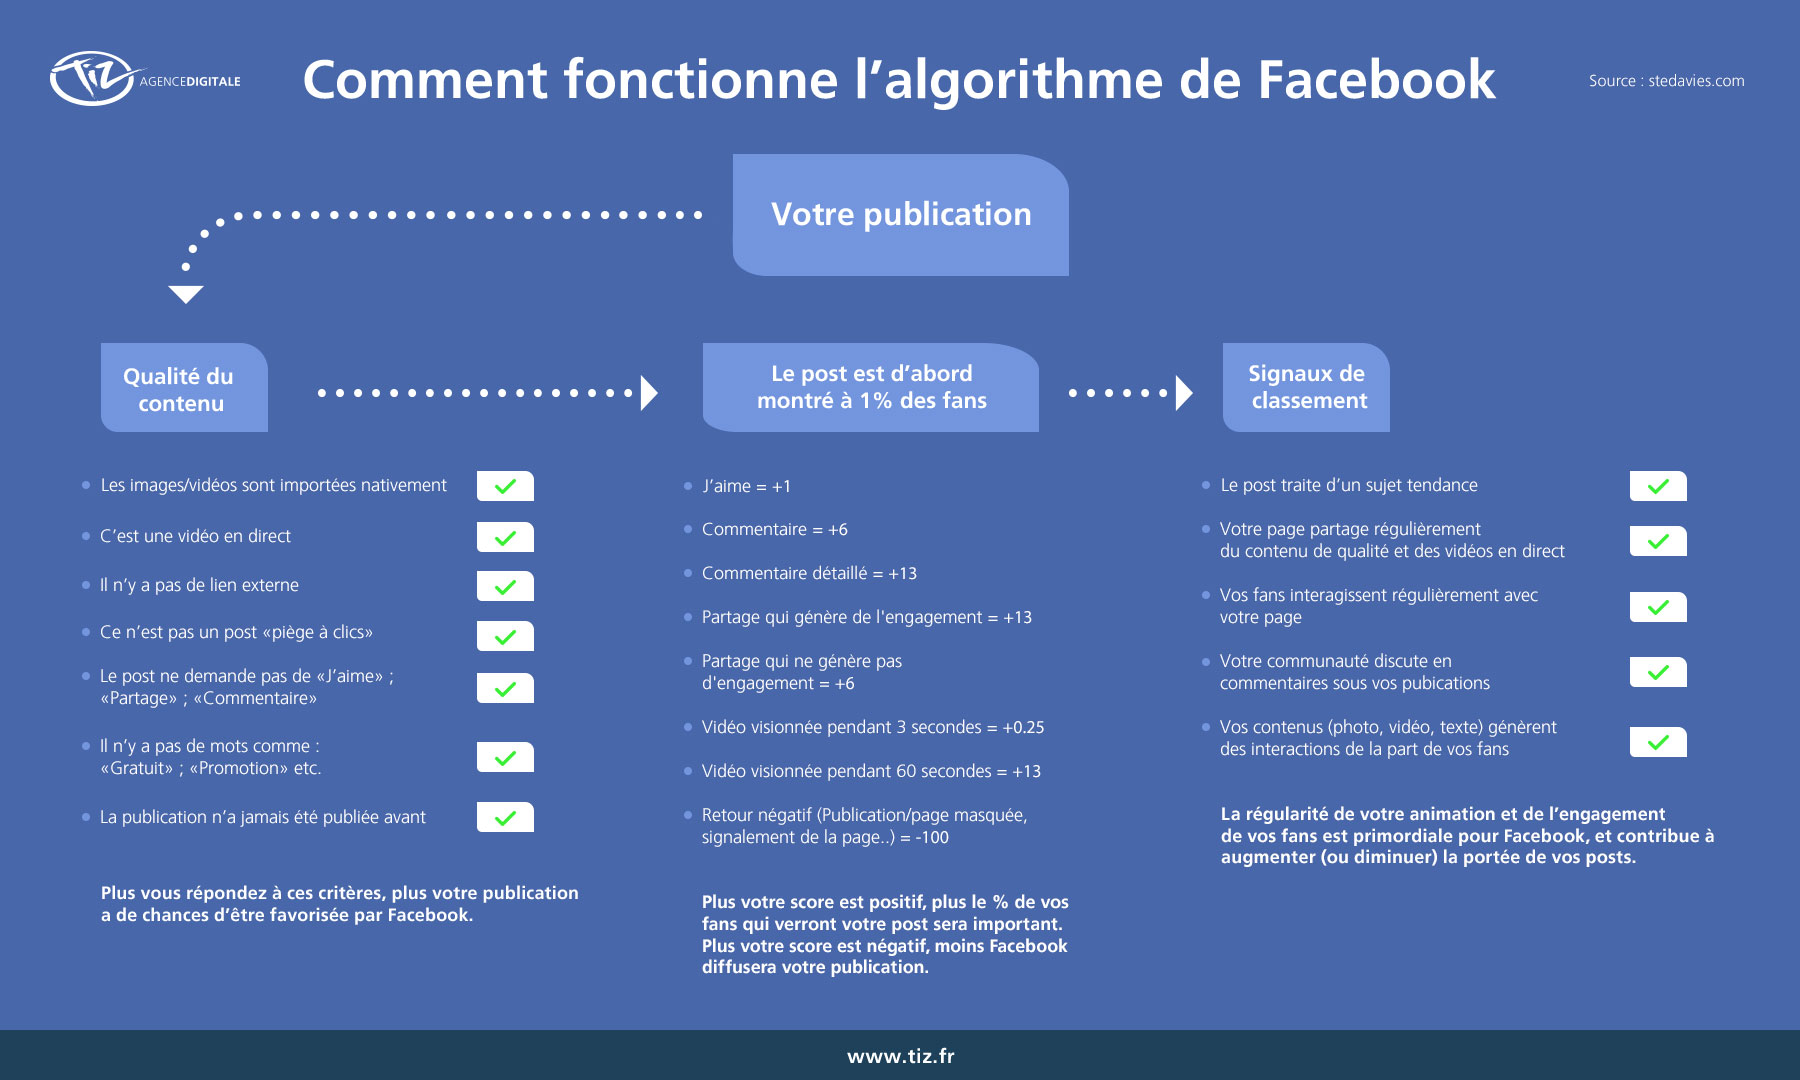 Comment hacker Linkedin, Twitter, Youtube, Facebook, Pinterest, Instagram... ? Jouez simplement avec l'algorithme ! 6